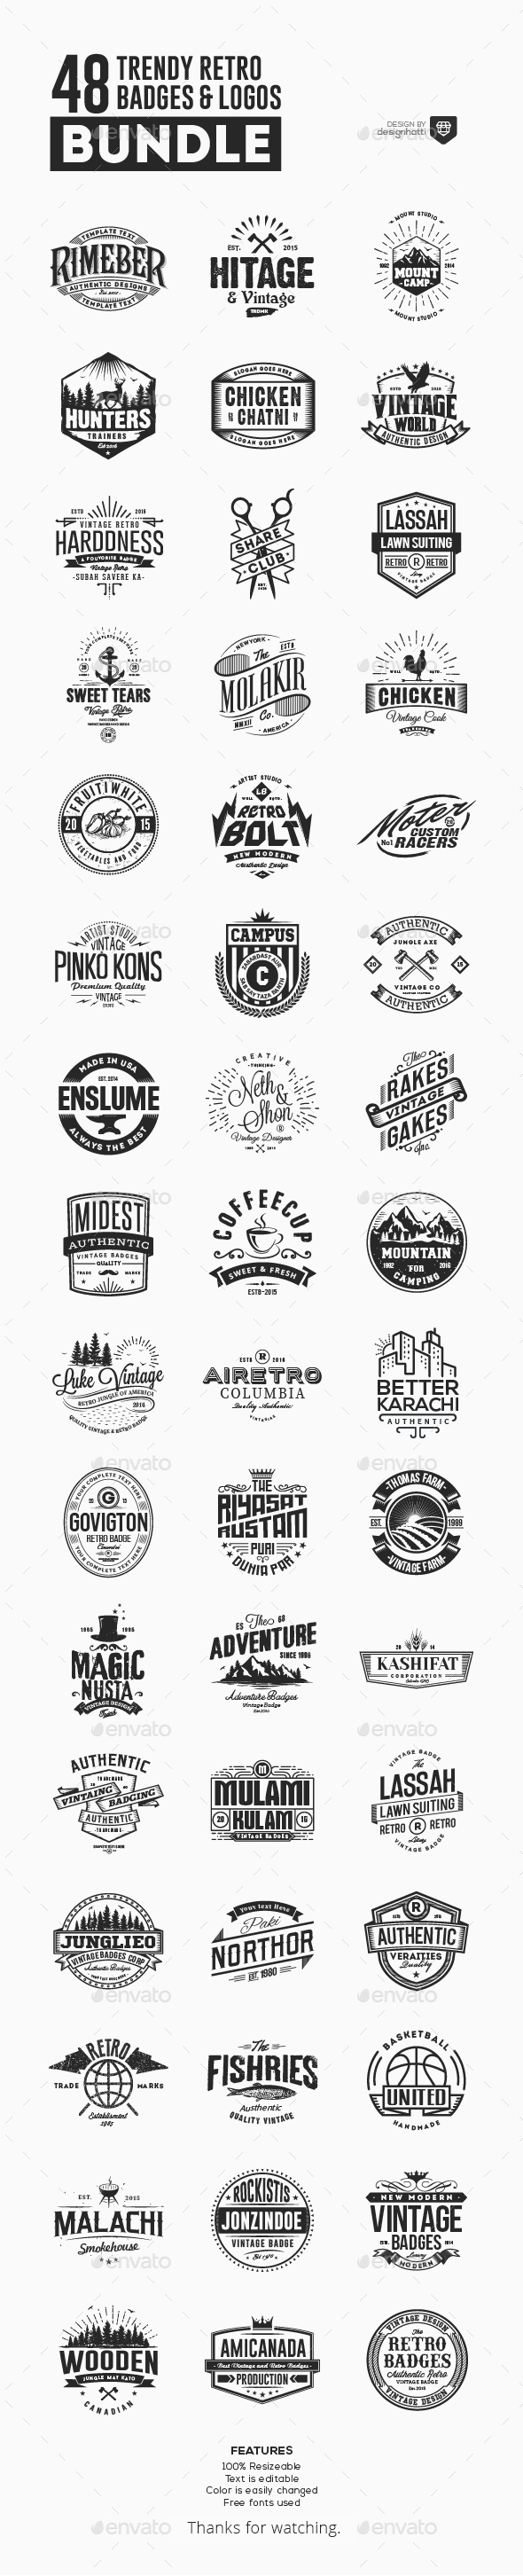 GraphicRiver 48 Trendy Retro Badges and Logos Bundle 20785360